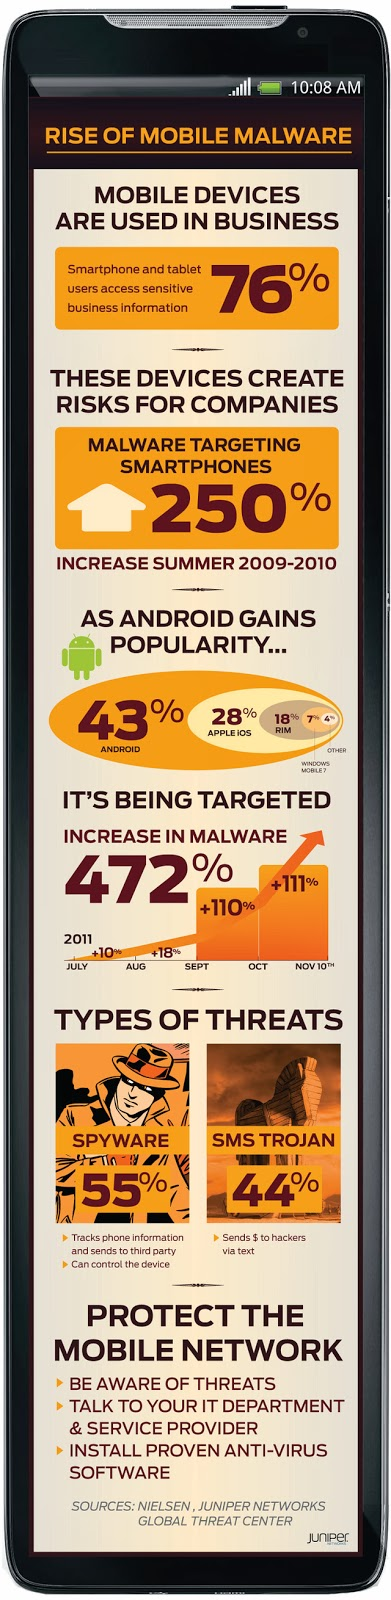 rise-of-mobile-malware